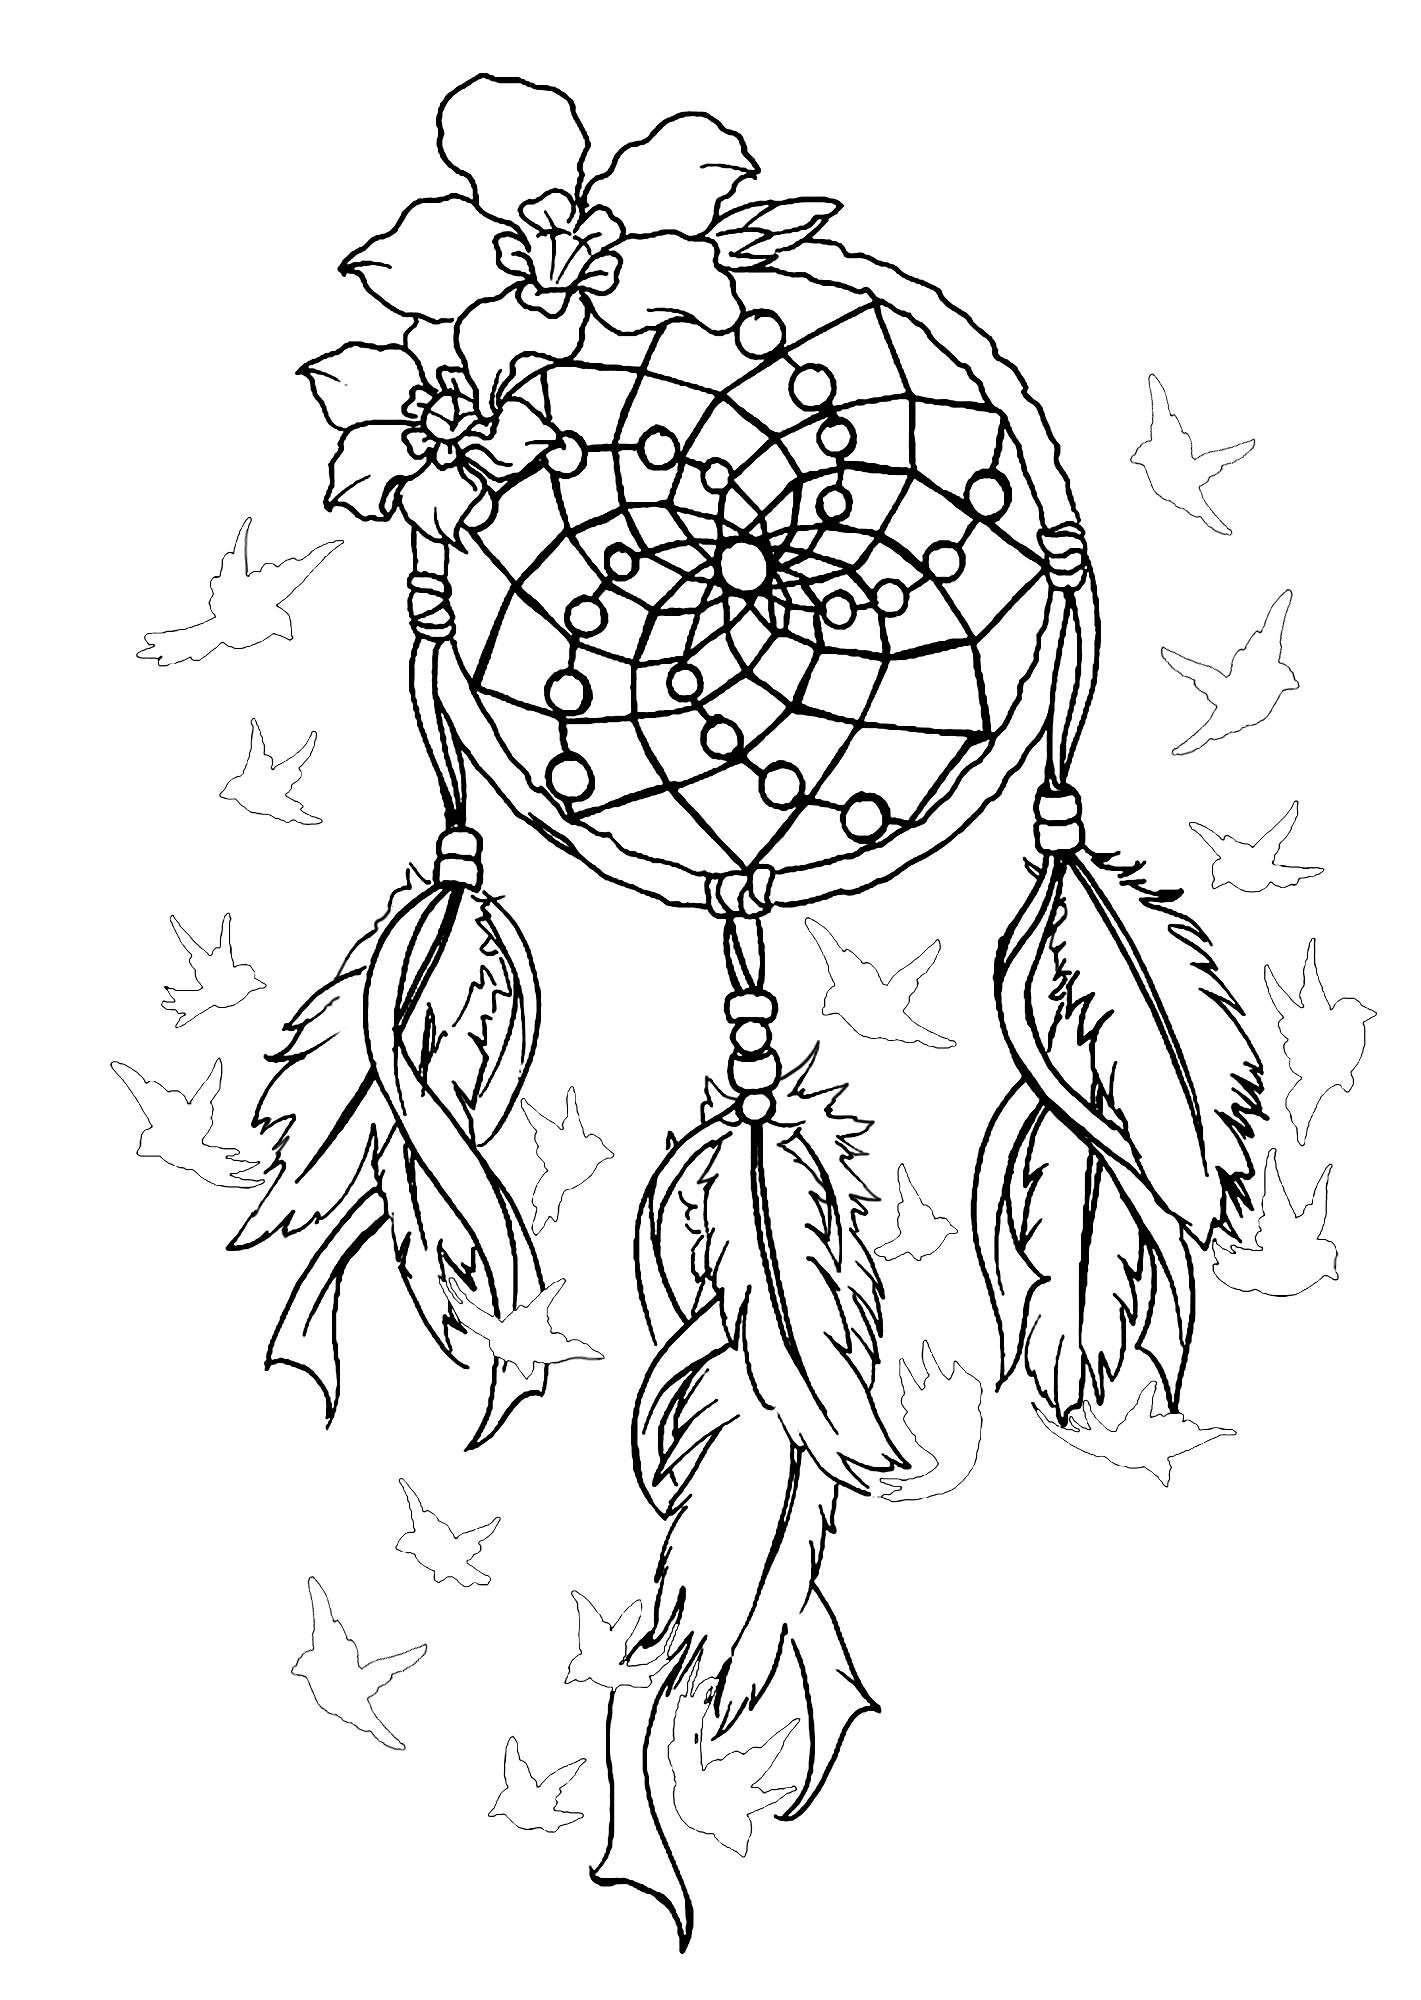 dream catcher coloring pages instant digital download dreamcatcher coloring page dream catcher coloring pages